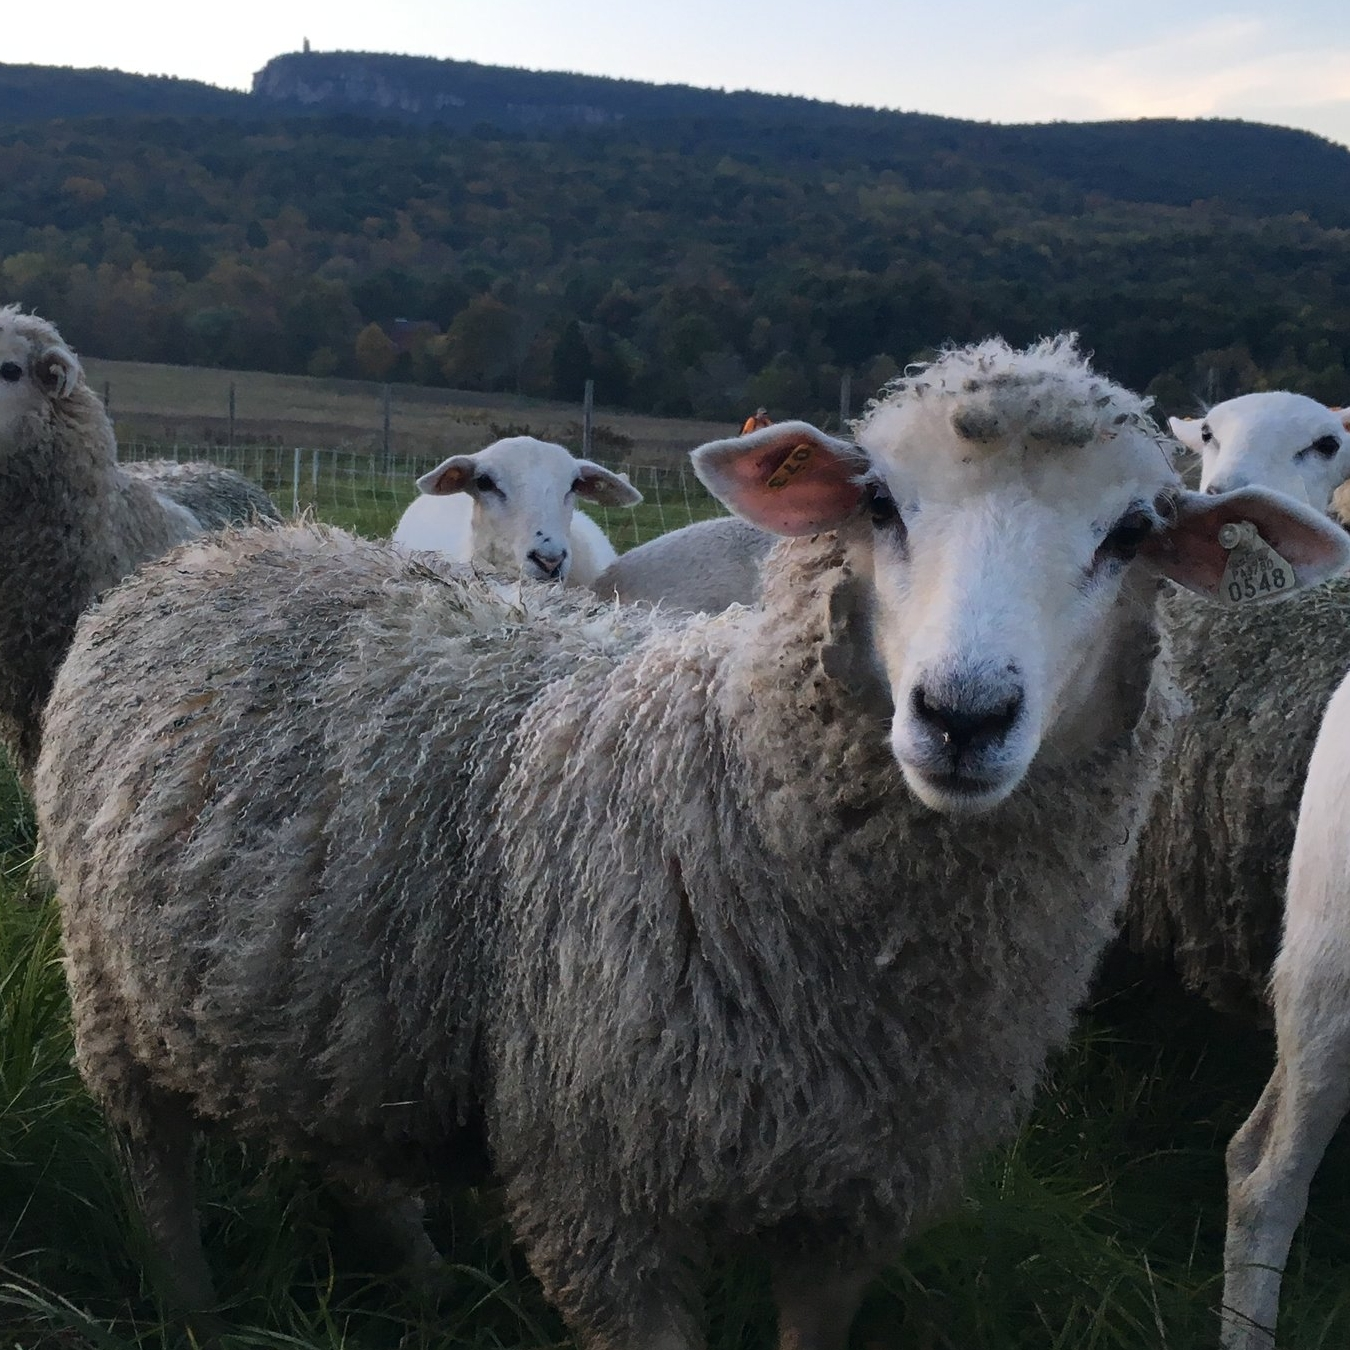 We raise 100% grass-fed and finished Katahdin and Coopworth sheep. The Coopworth sheep are a dual-purpose breed that produces incredibly beautiful wool in addition to tasty meat. Katahdin sheep, on the other hand, have hair (like goats) rather than wool. Katahdins do very well in our climate and are known for producing high quality, mild-flavored meat.